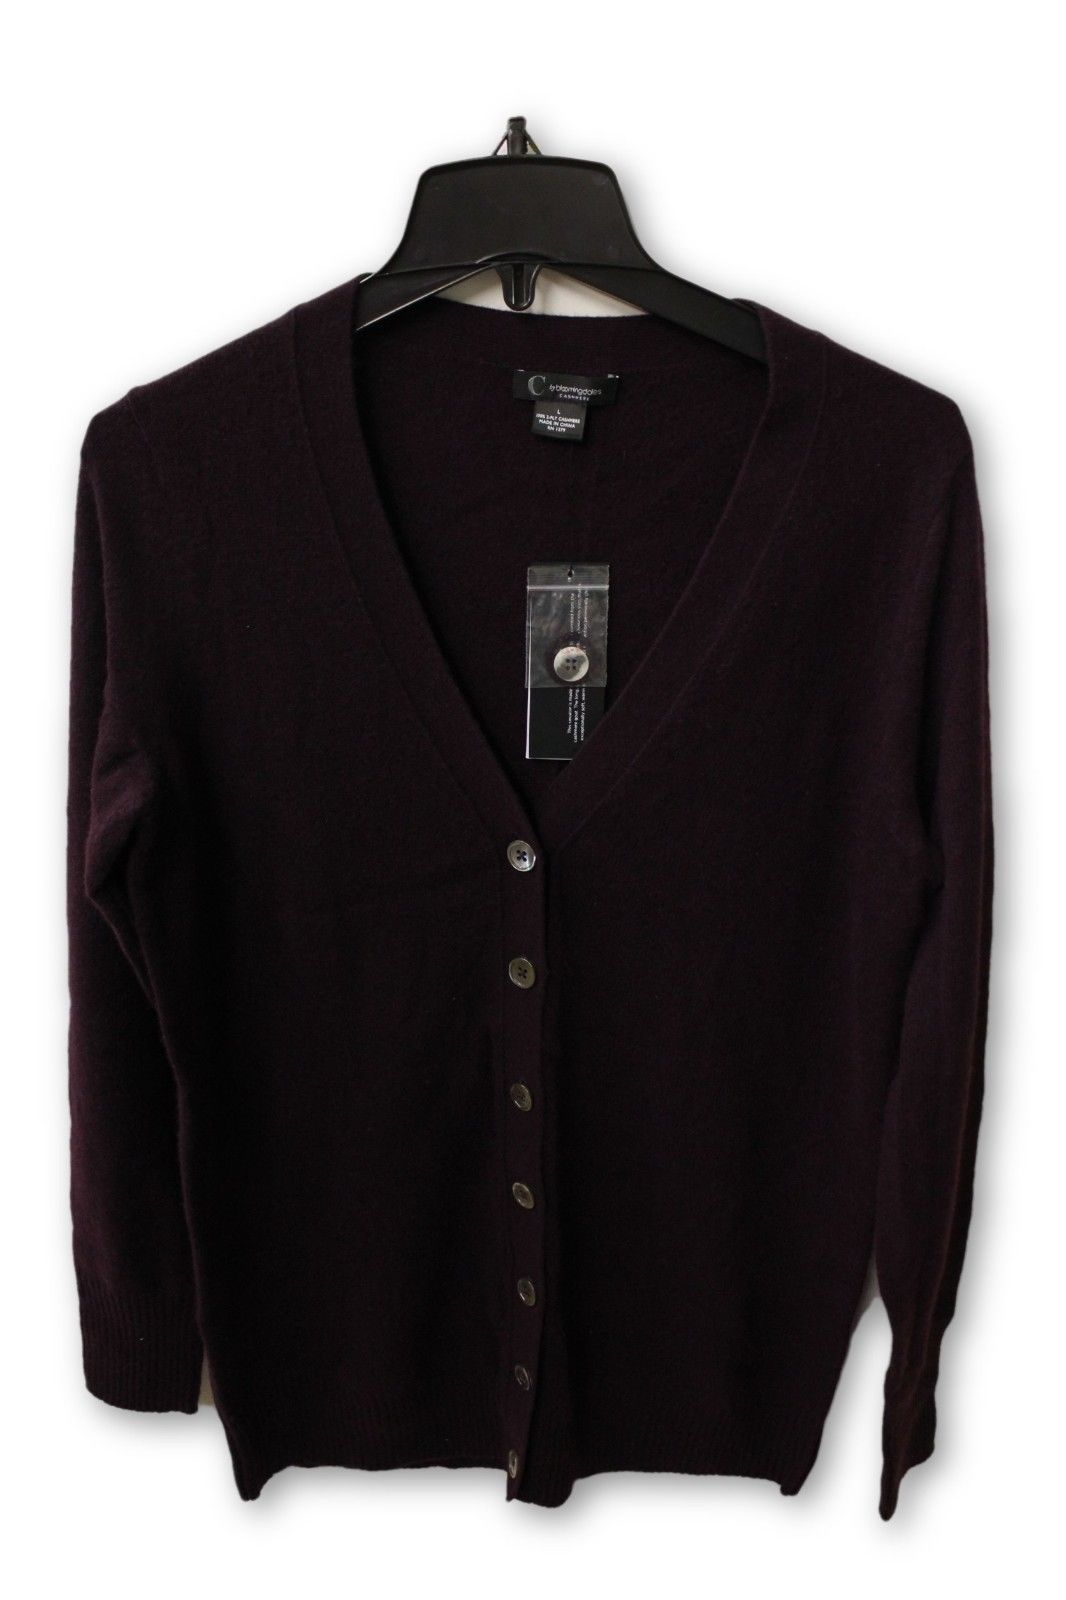 C by Bloomingdale's Women's Cashmere - Purple Buttoned Cardigan Sweater L NWT